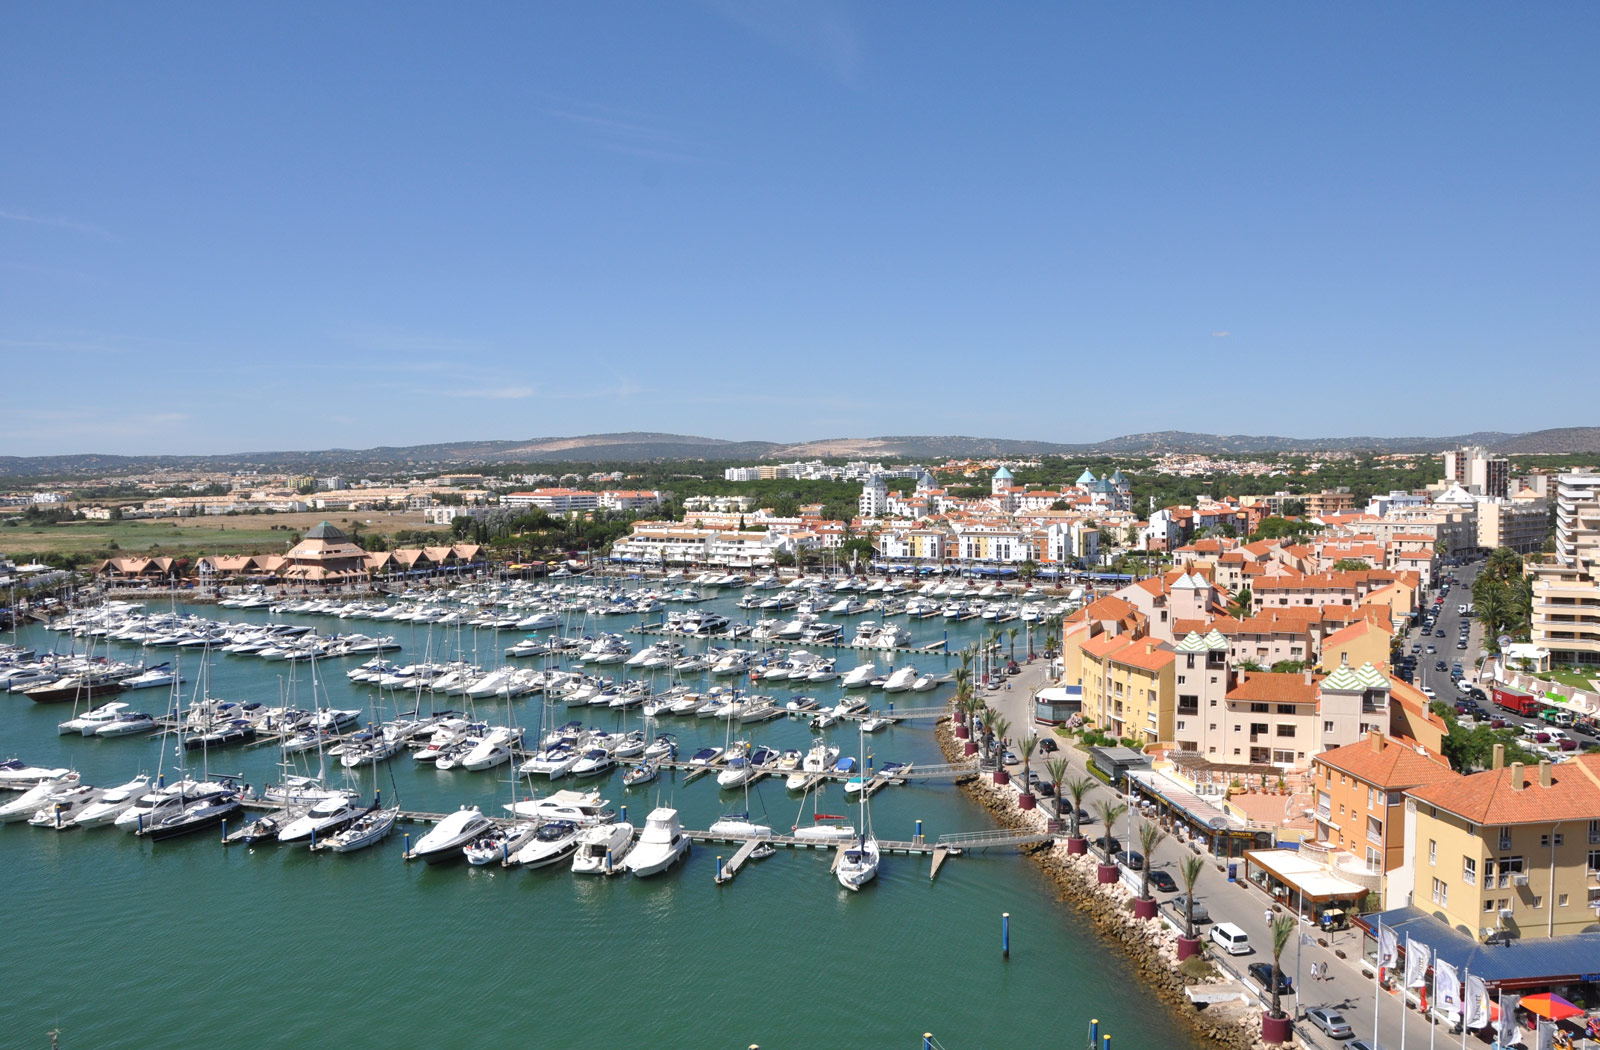 Vilamoura: 3 terraces with a view